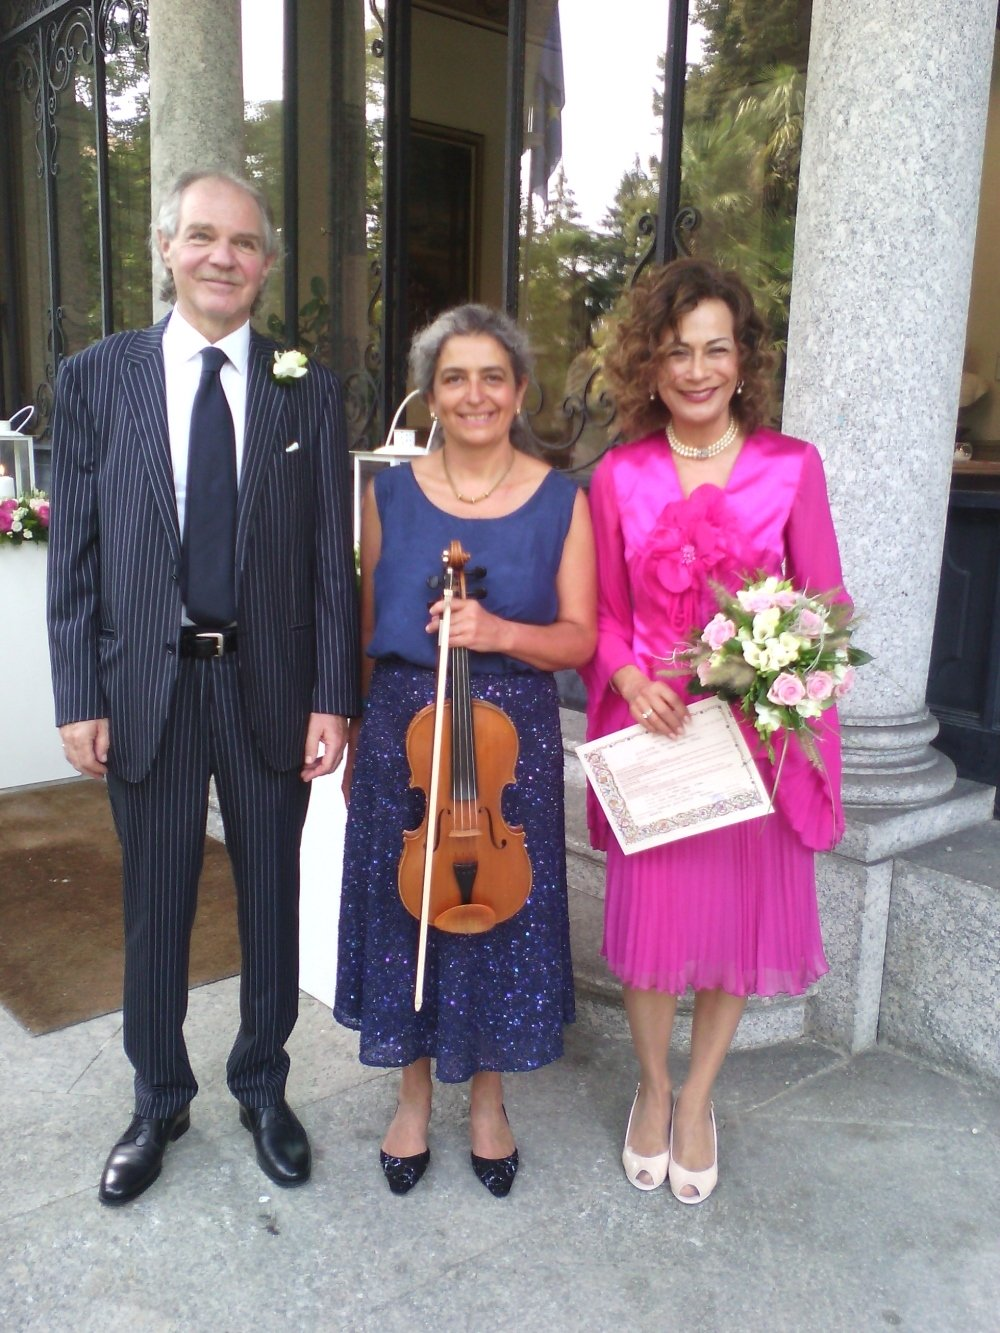 One more couple who chose me as their wedding musician for their civil ceremony, in Villa Confalonieri, Merate, Italy